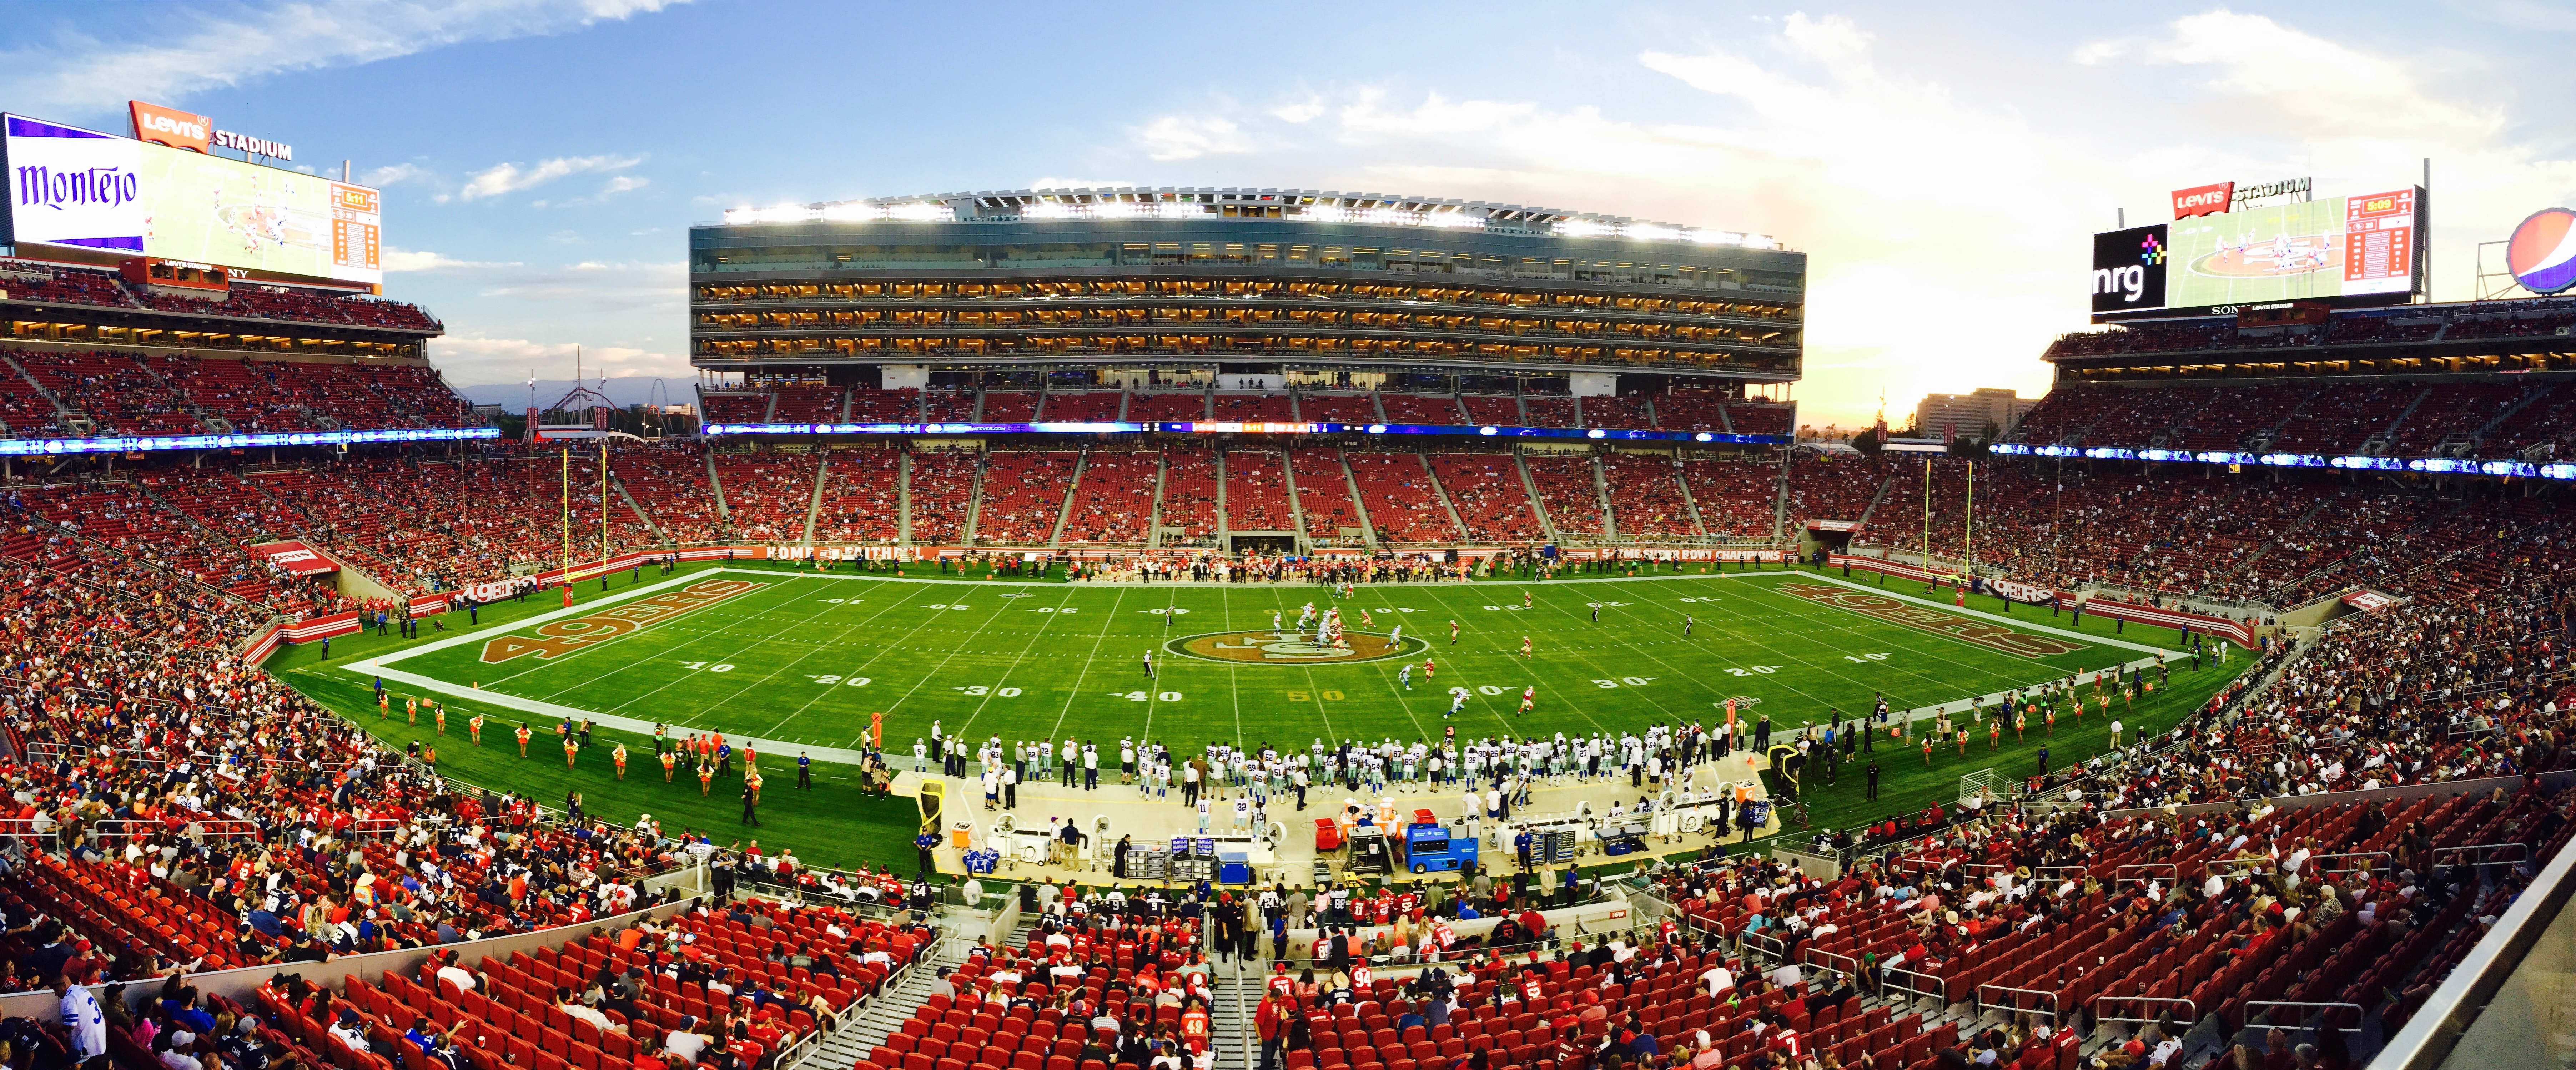 Nfl stadium field full with crowd watching the game during daytime photo